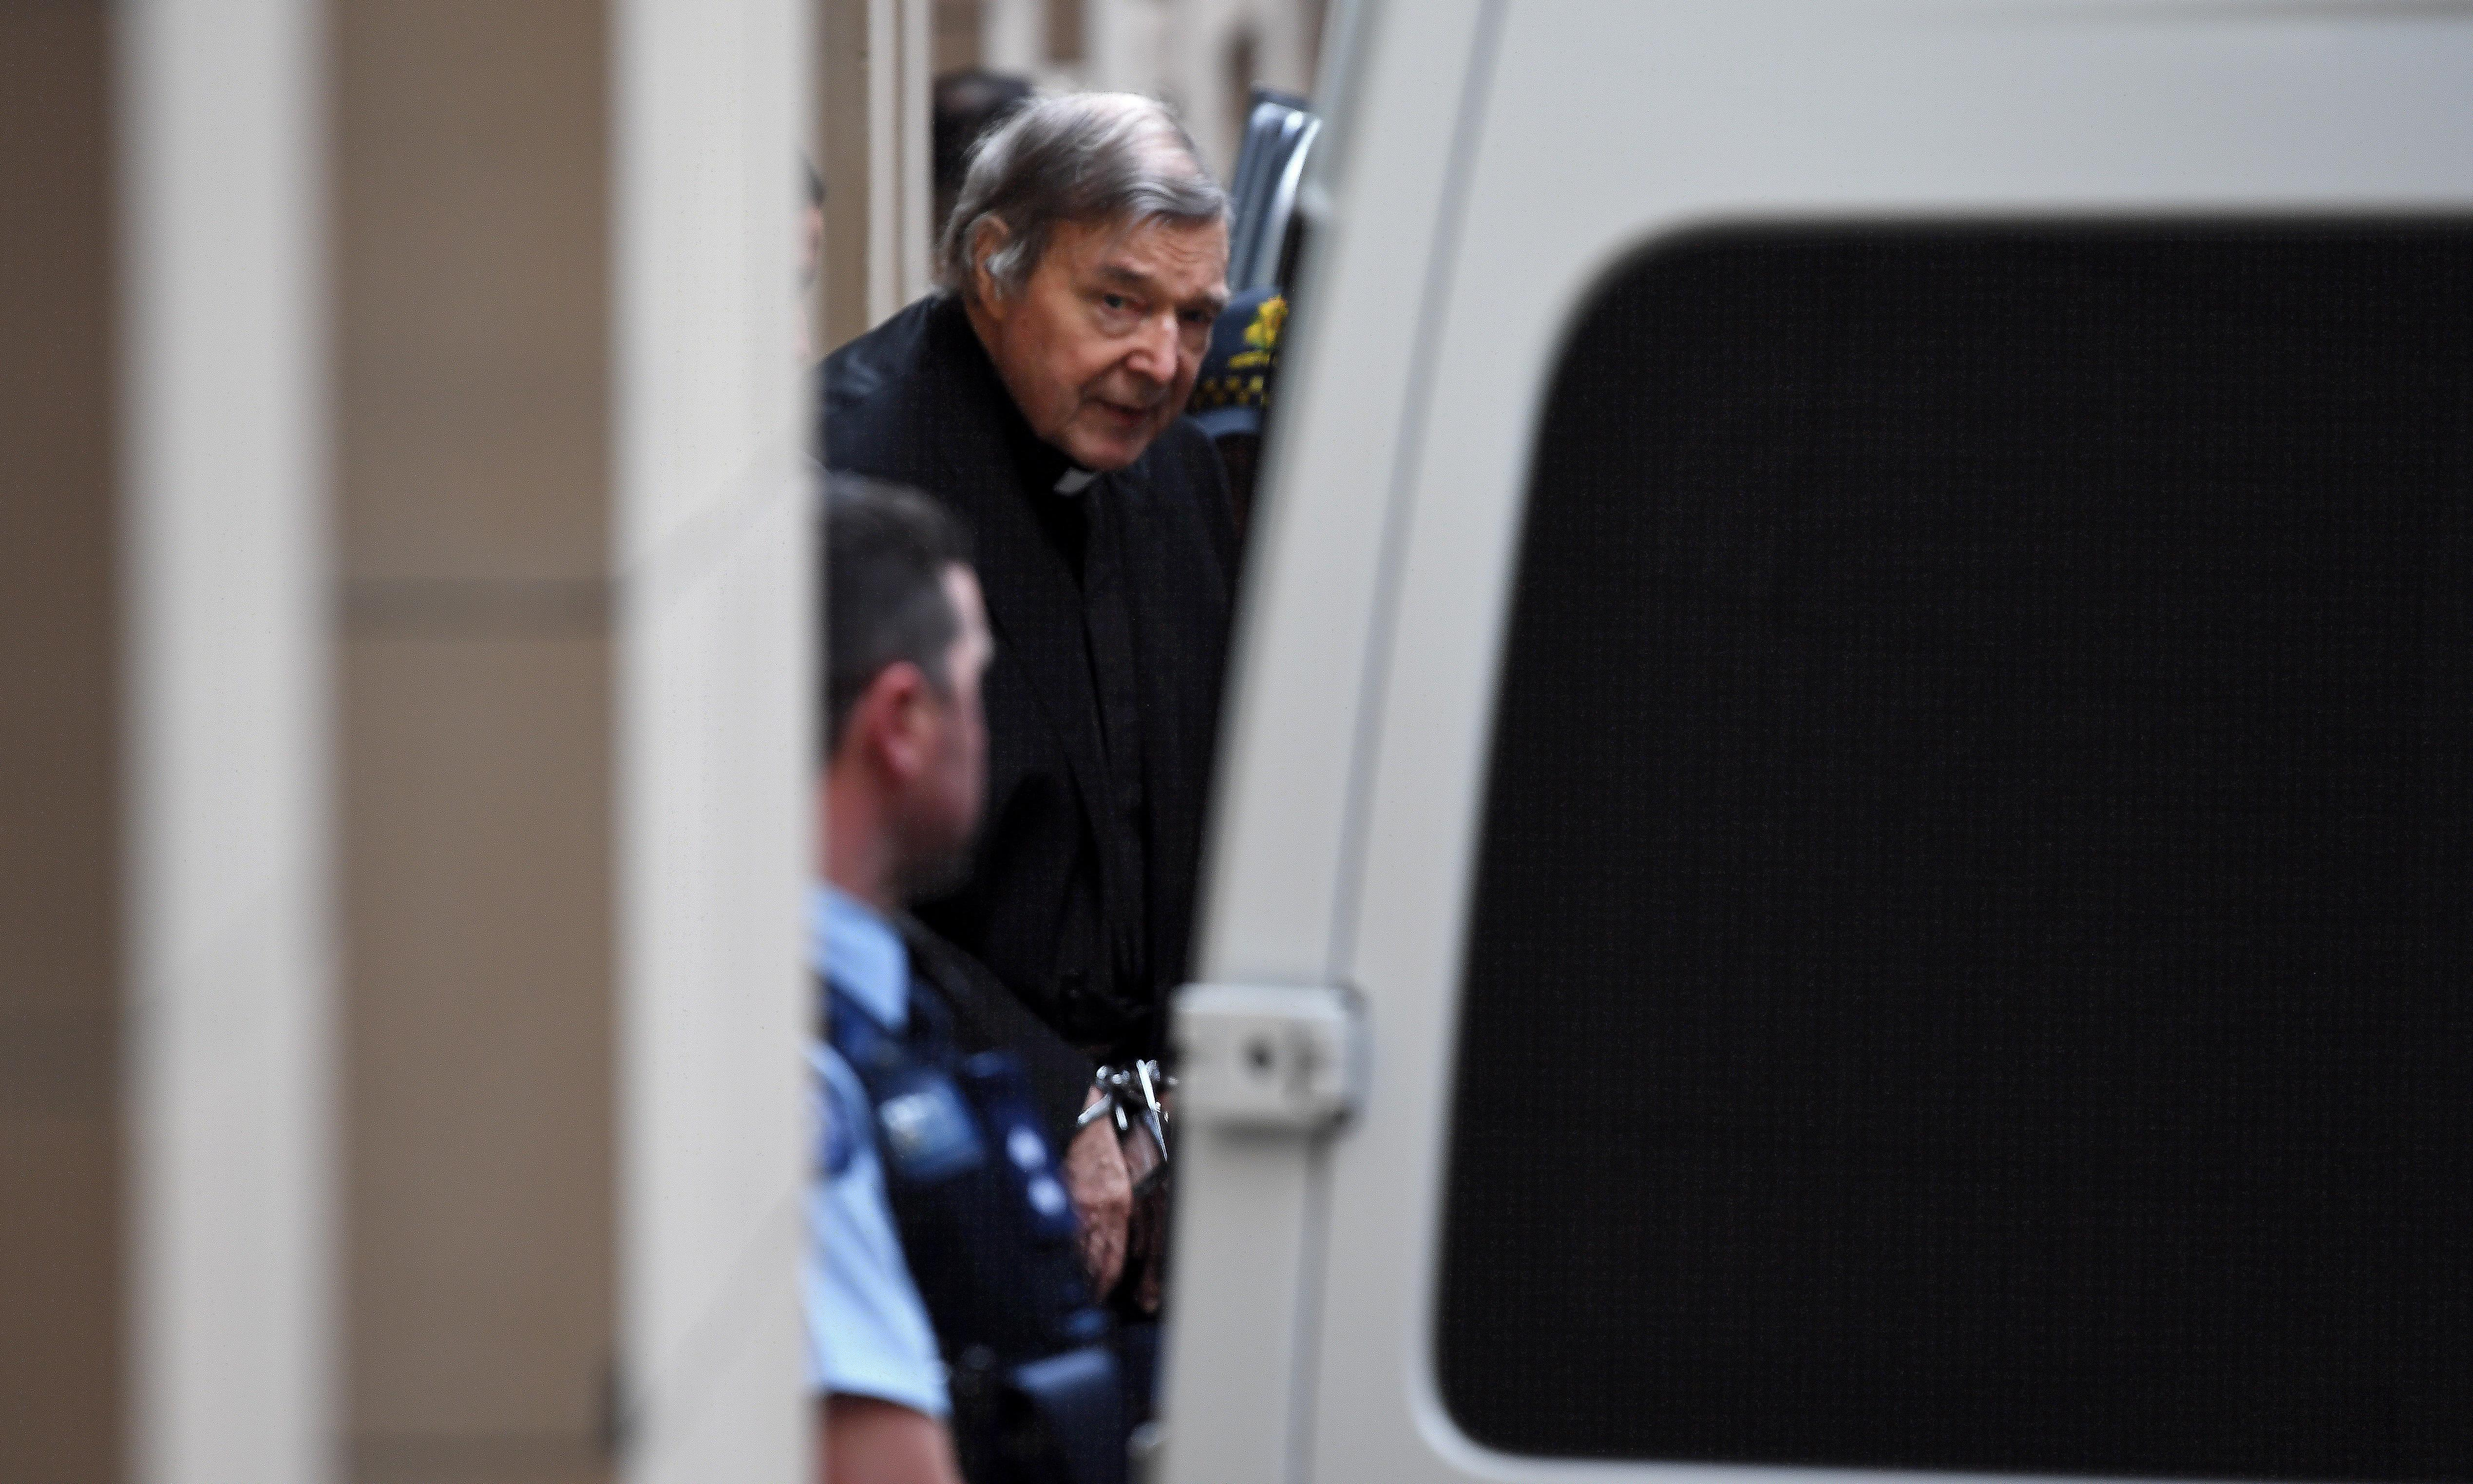 At the verdict George Pell didn't flinch; he just pursed his lips a little. He was going back to jail